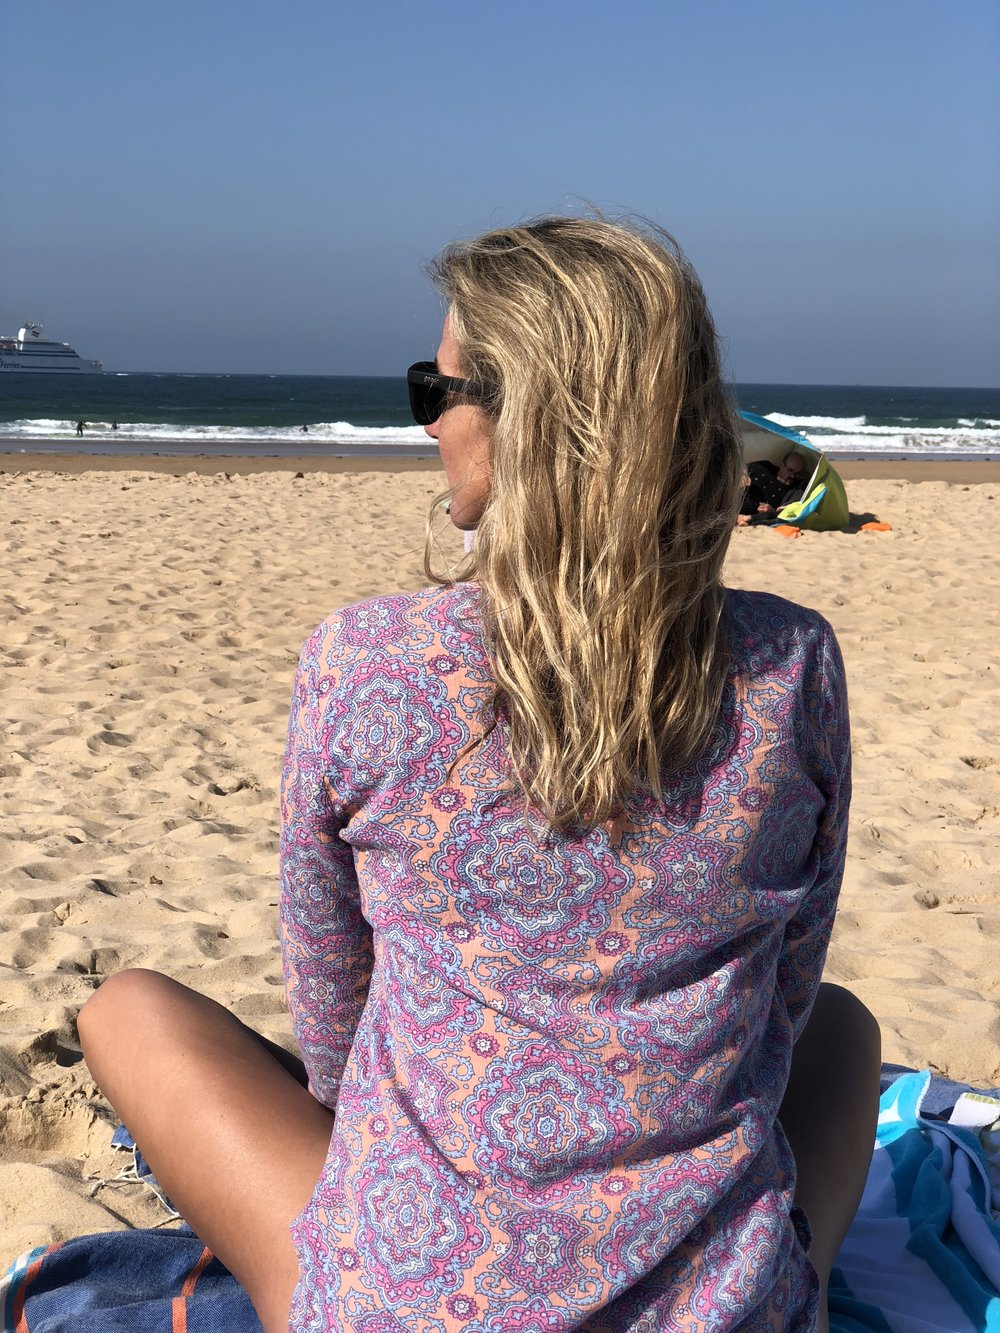 Taking a moment - To watch my family and the surf before jumping in myself.